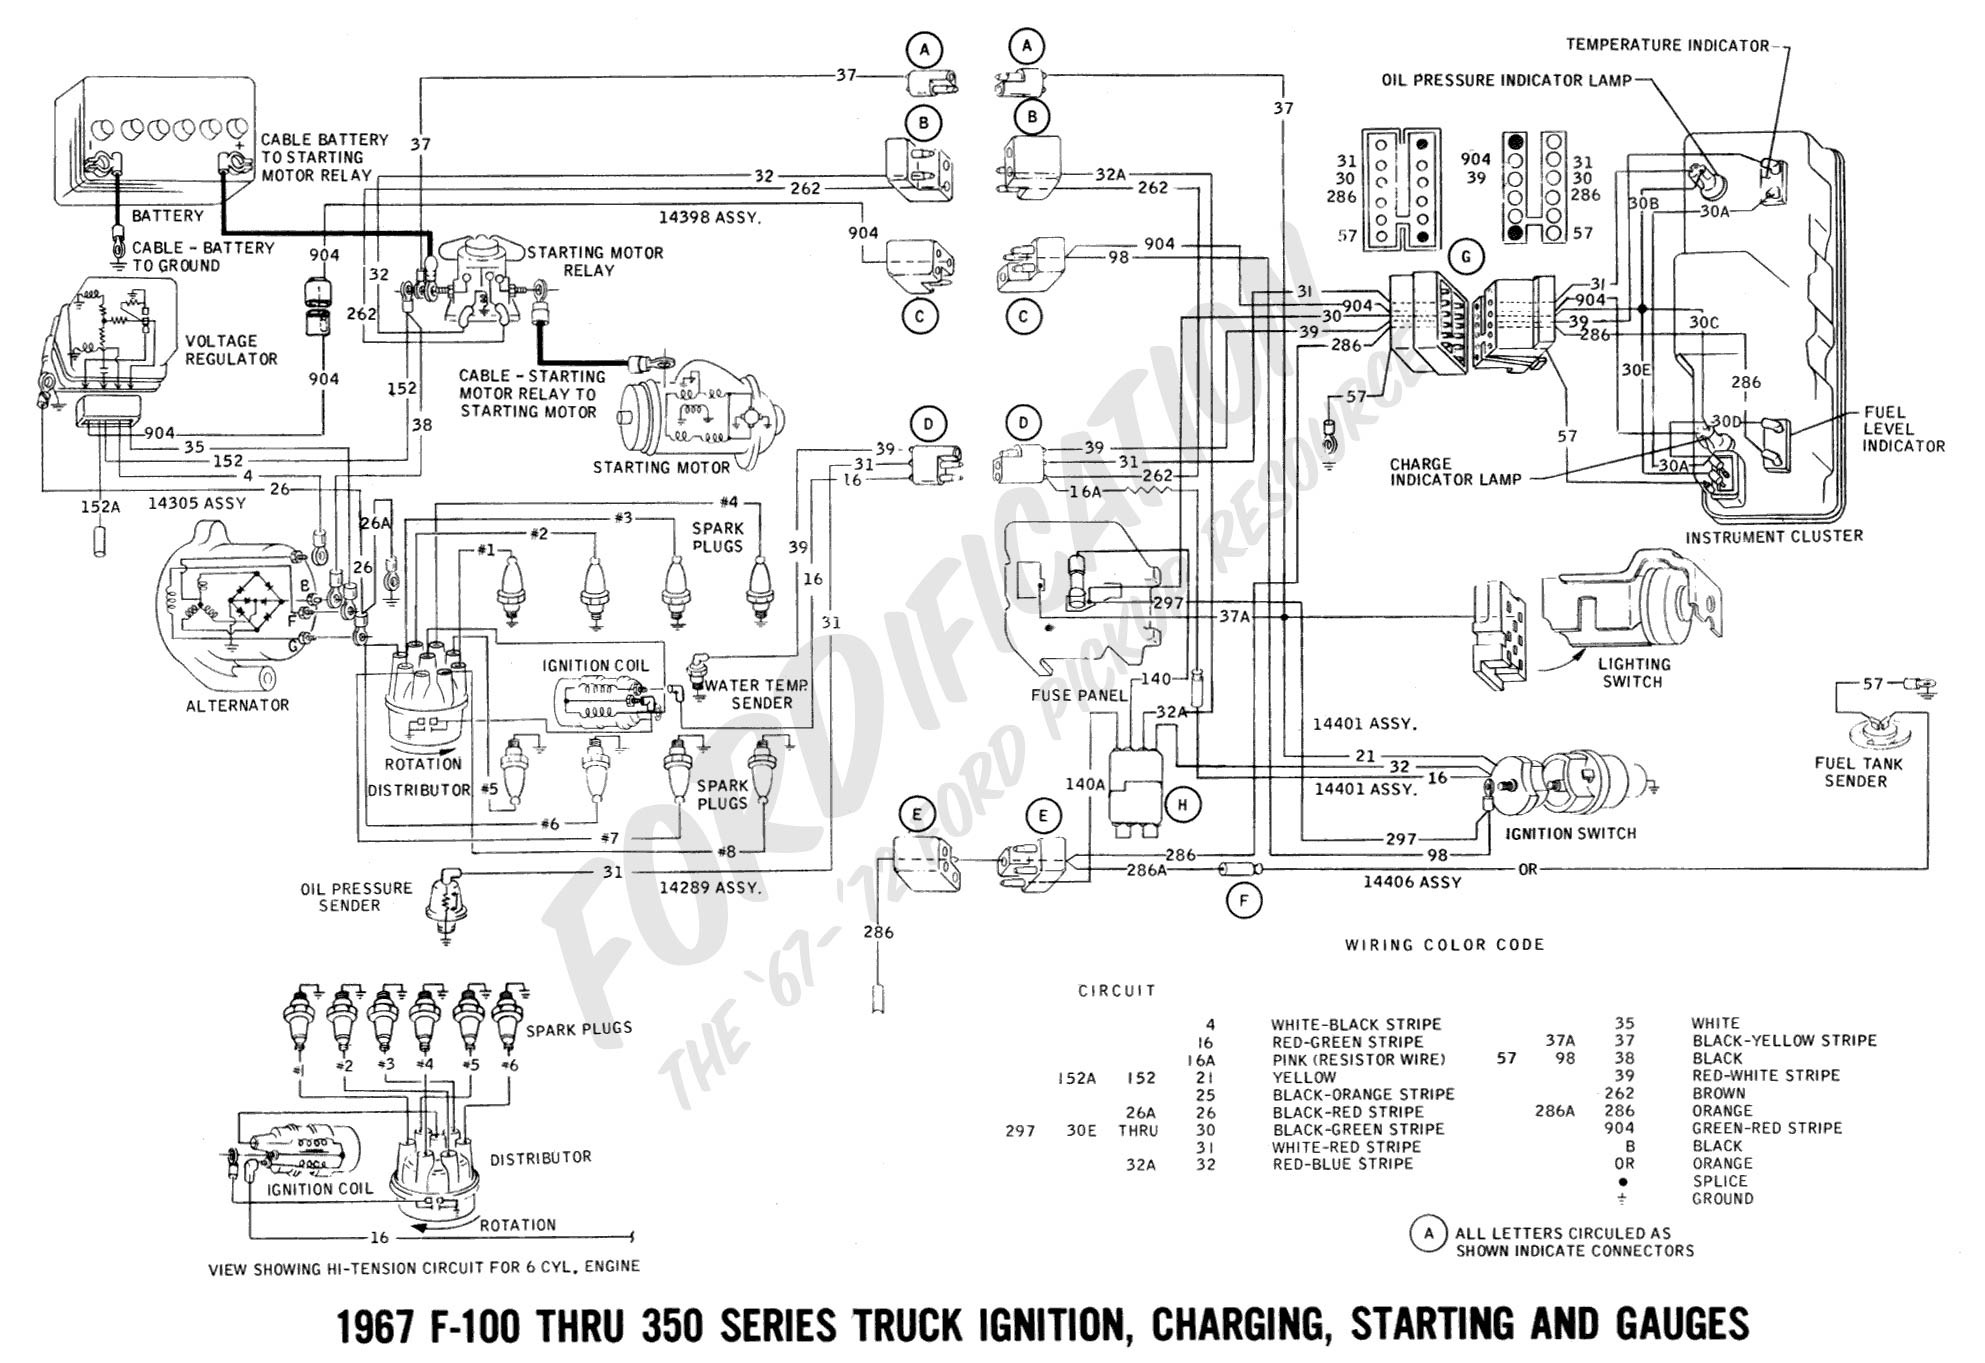 2004 ford f150 engine diagram ford charging system wiring diagram rh  detoxicrecenze com 2004 F150 Radio Wiring 2003 F150 Radio Wiring Diagram